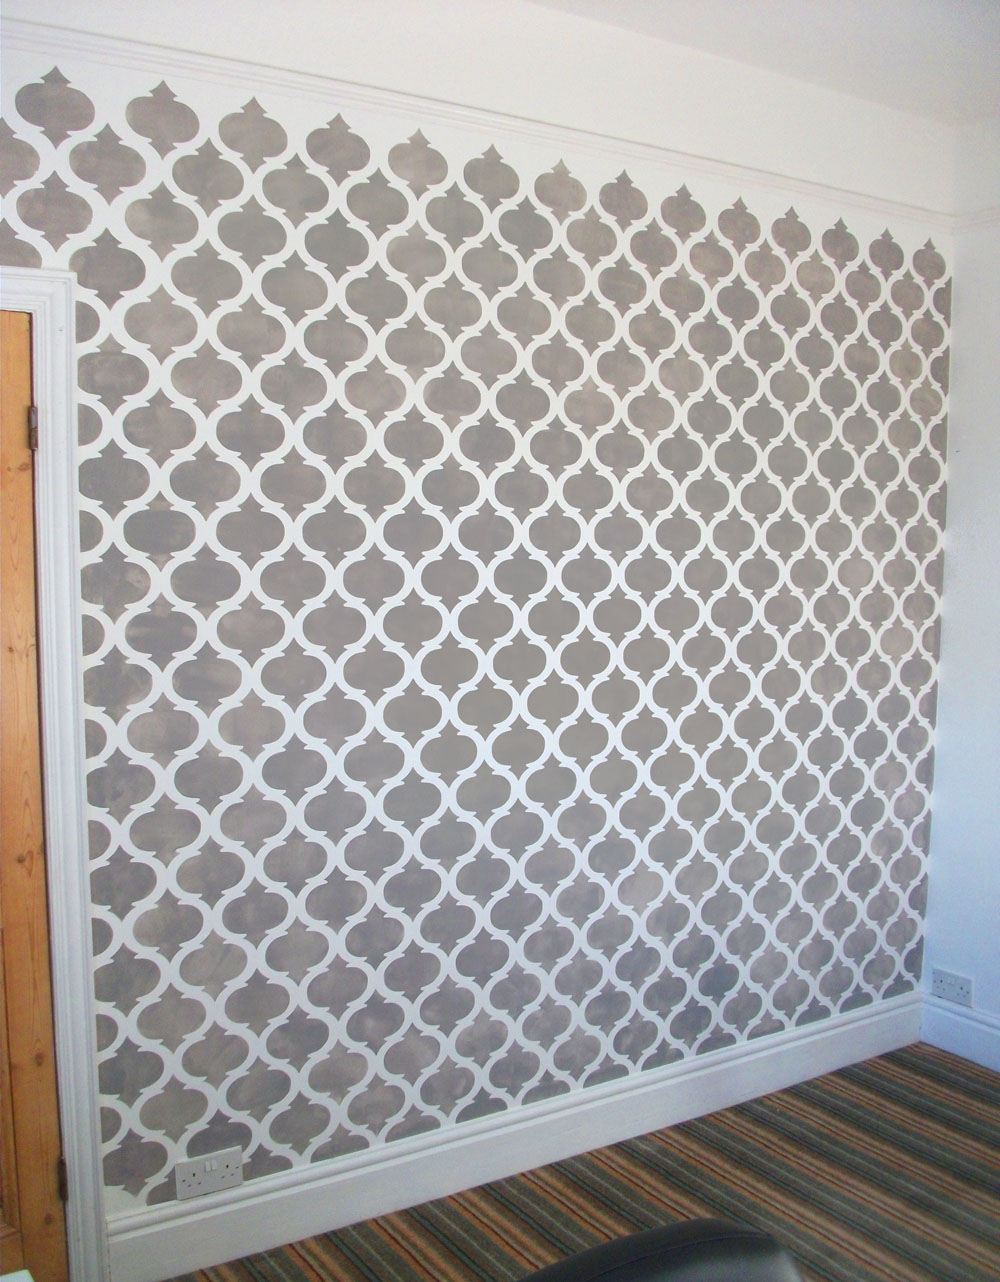 Wall pattern stencil images home wall decoration ideas moroccan quatrefoil allover pattern stencilling ideal stencils blog final moroccan stencil amipublicfo images amipublicfo Image collections